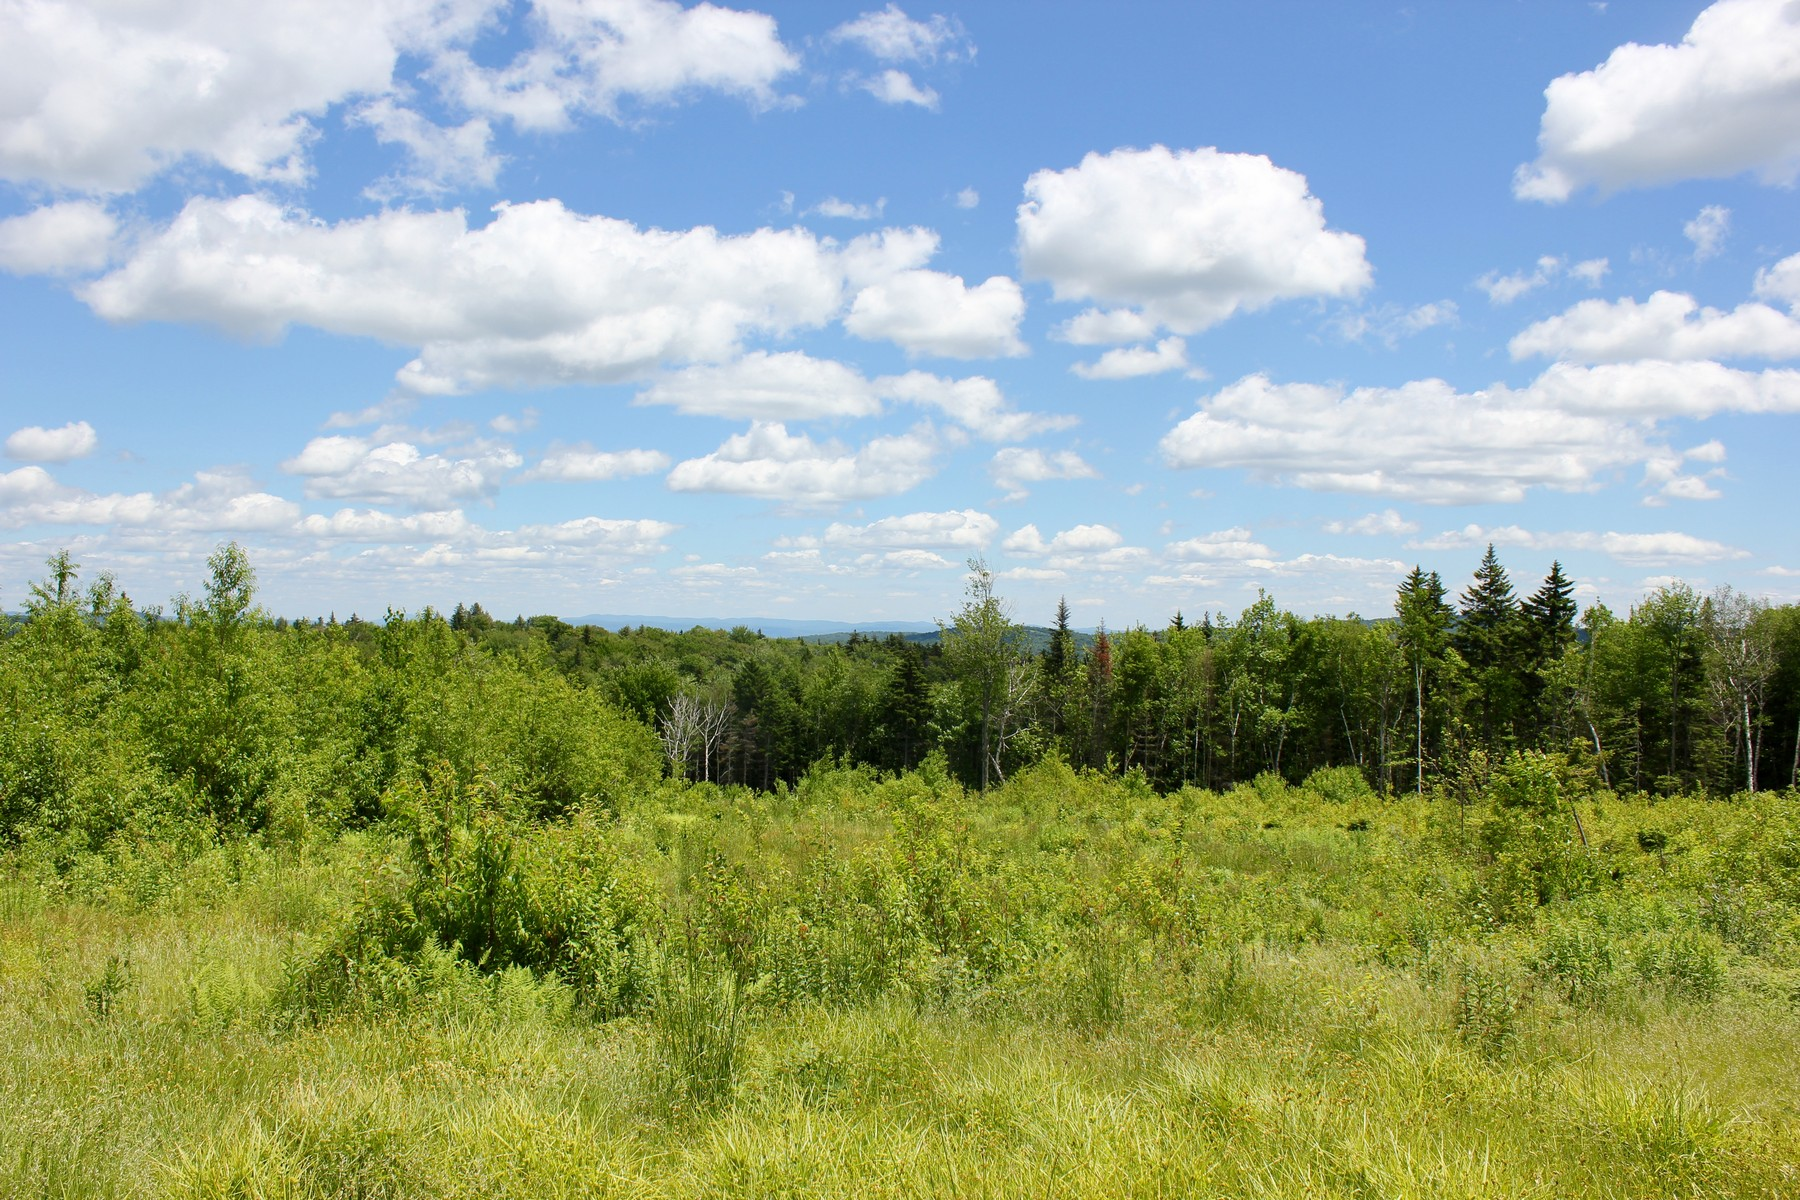 Land for Sale at 19+ Acres with Long Range Views Valley View Ext 10 Andover, Vermont 05143 United States